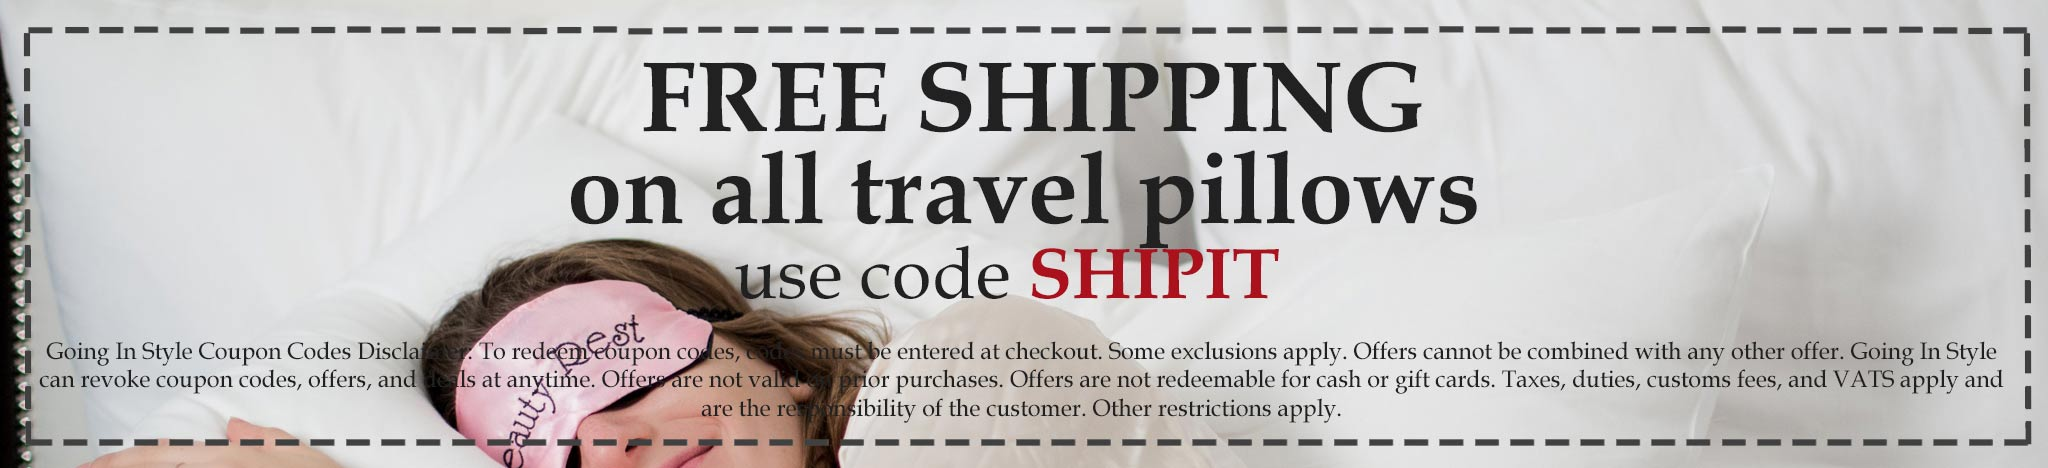 Going In Style Coupon Codes